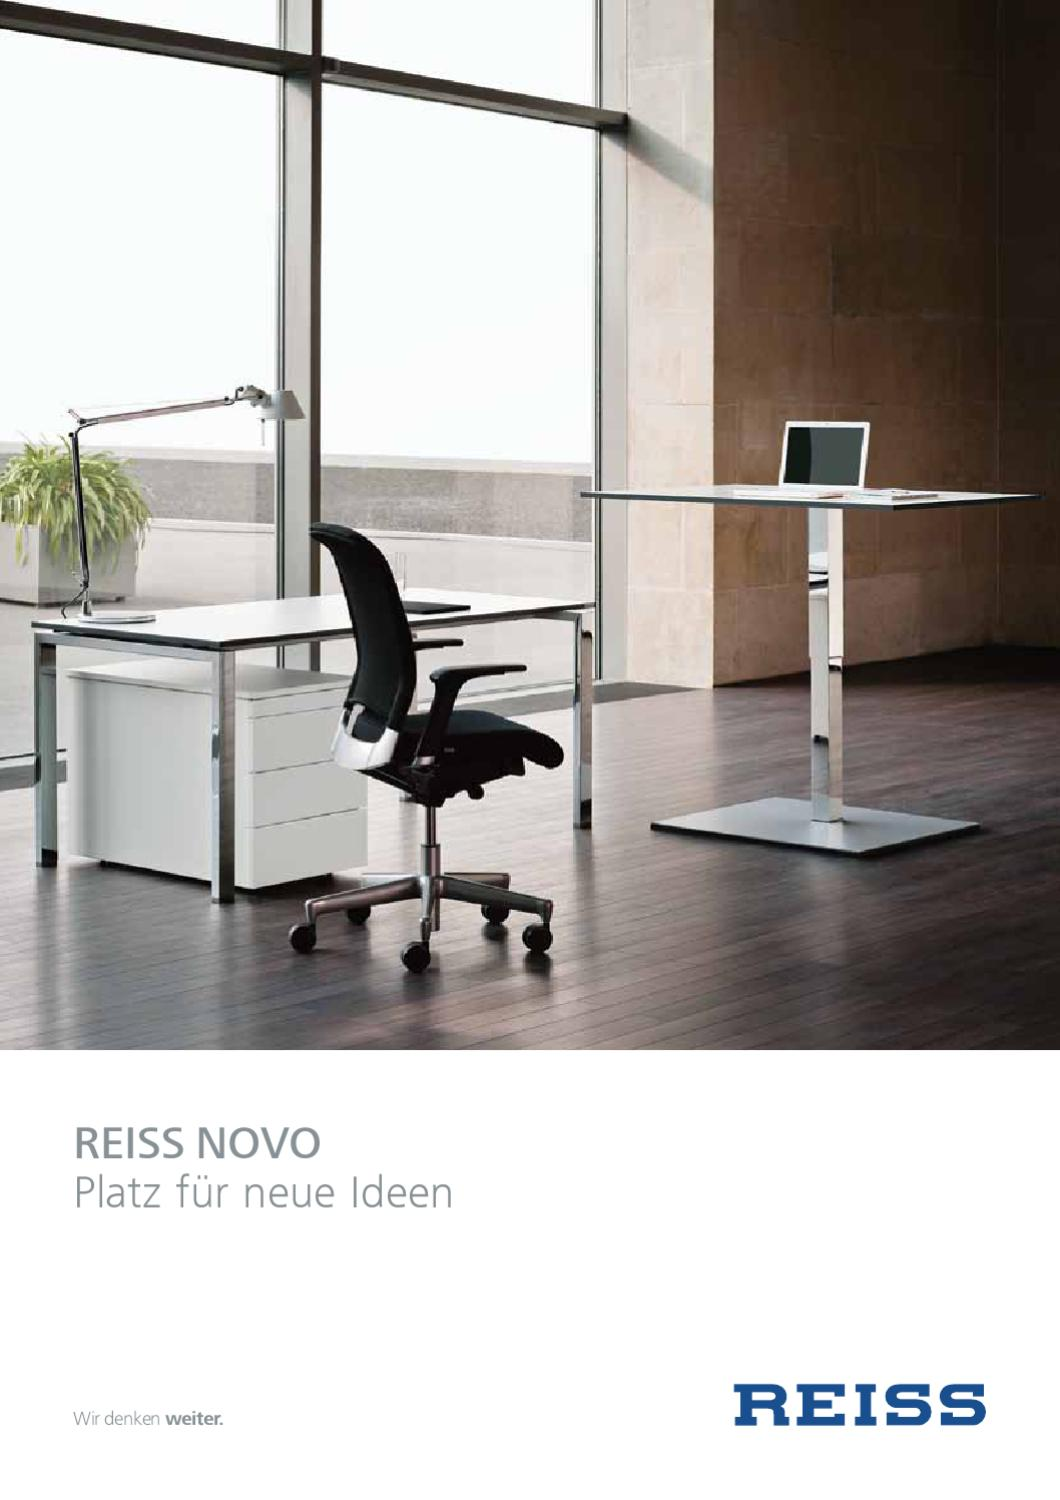 Büromöbel Reiss Reiss Novo By Reiss Büromöbel Gmbh Issuu